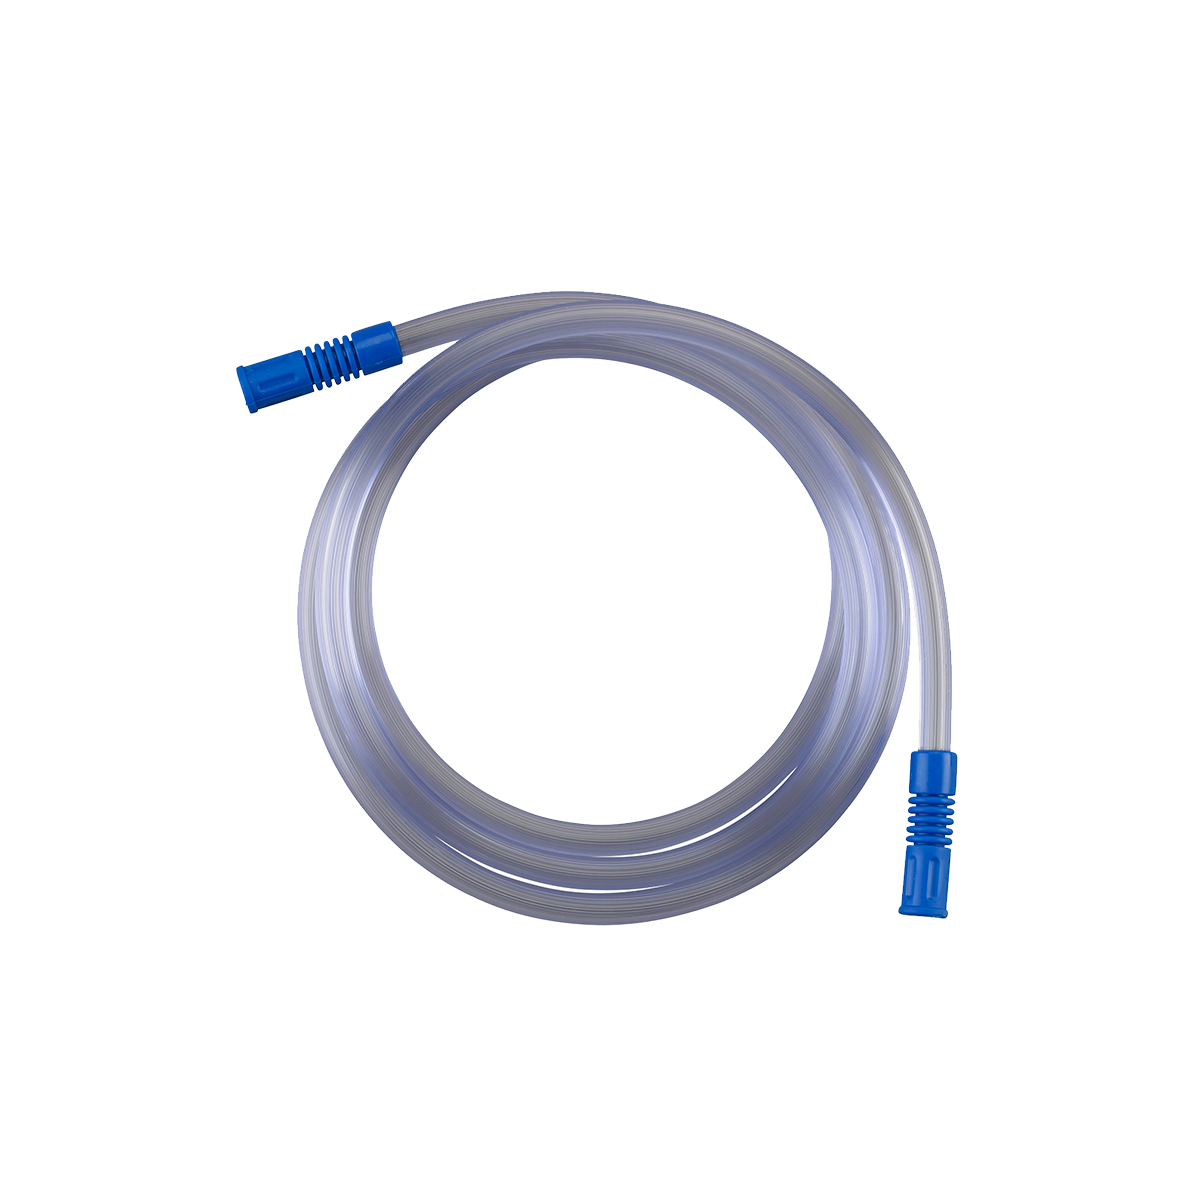 Surgical suction tubing